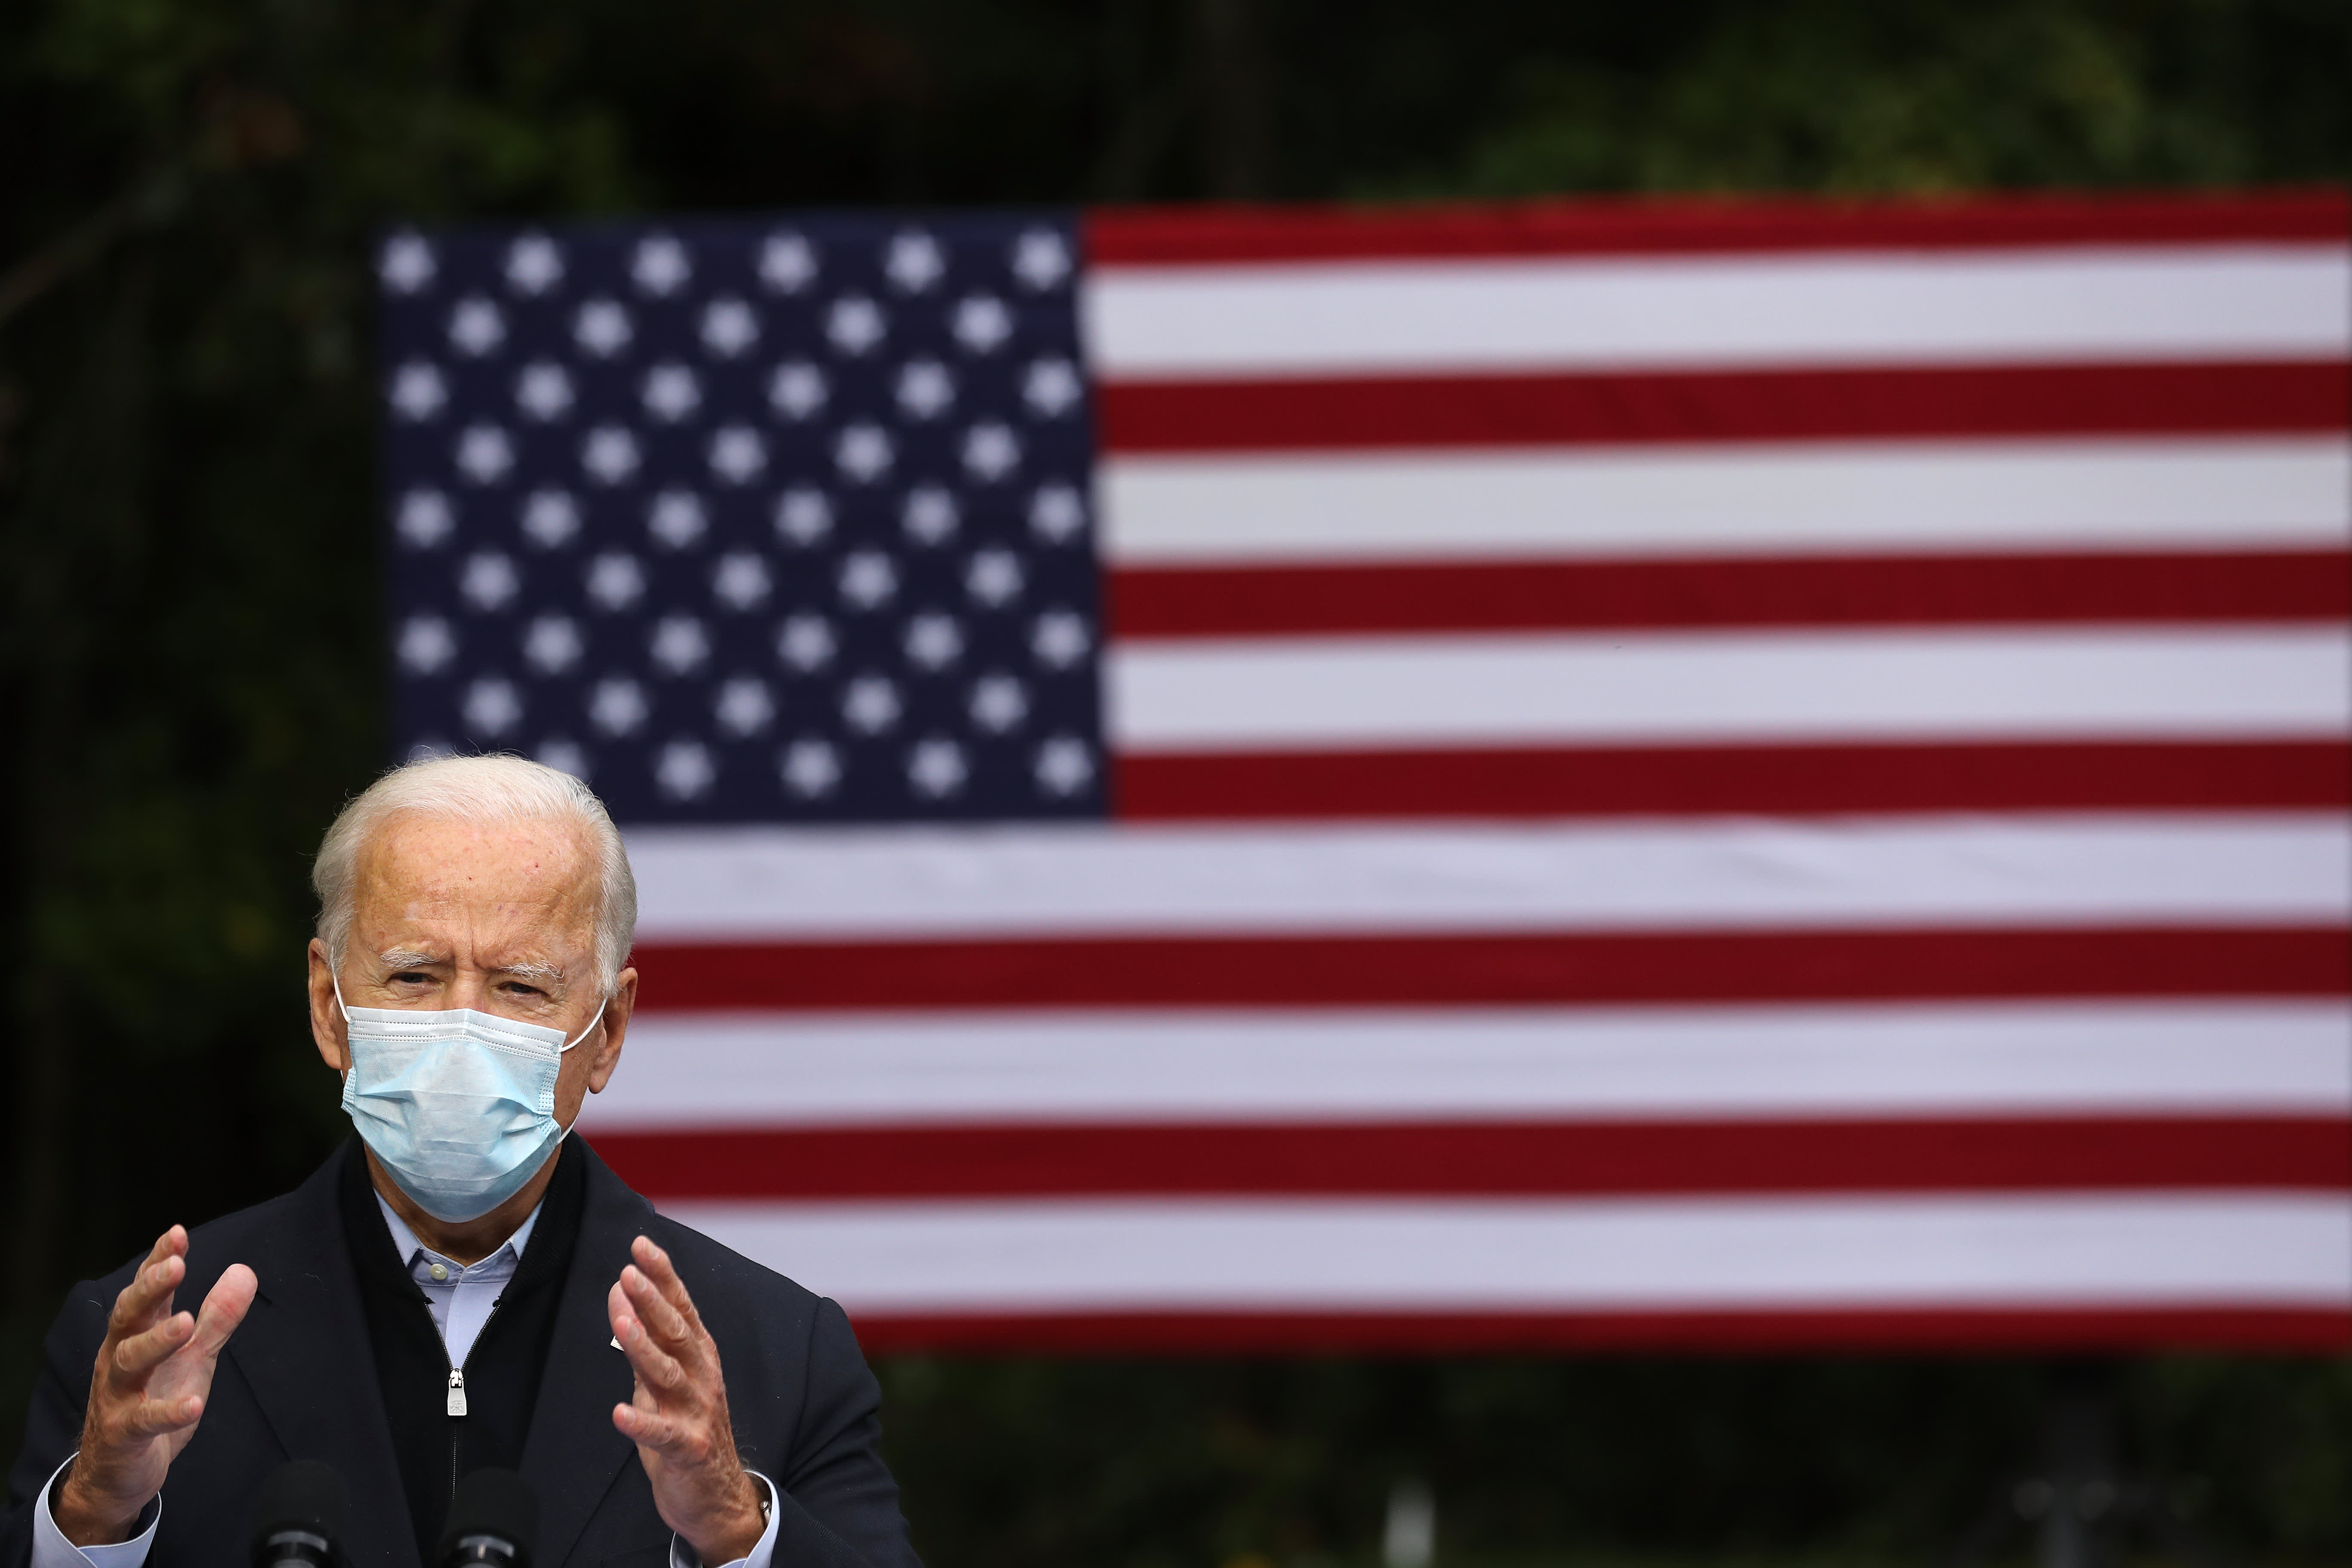 Biden may face an uphill task trying to form an 'anti-China alliance' in Asia